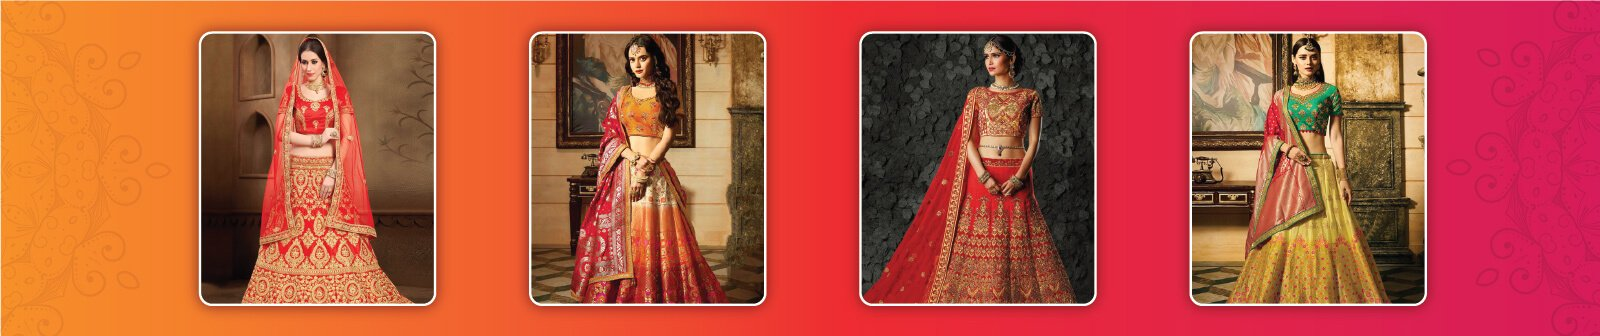 Bridal Wear in Surat